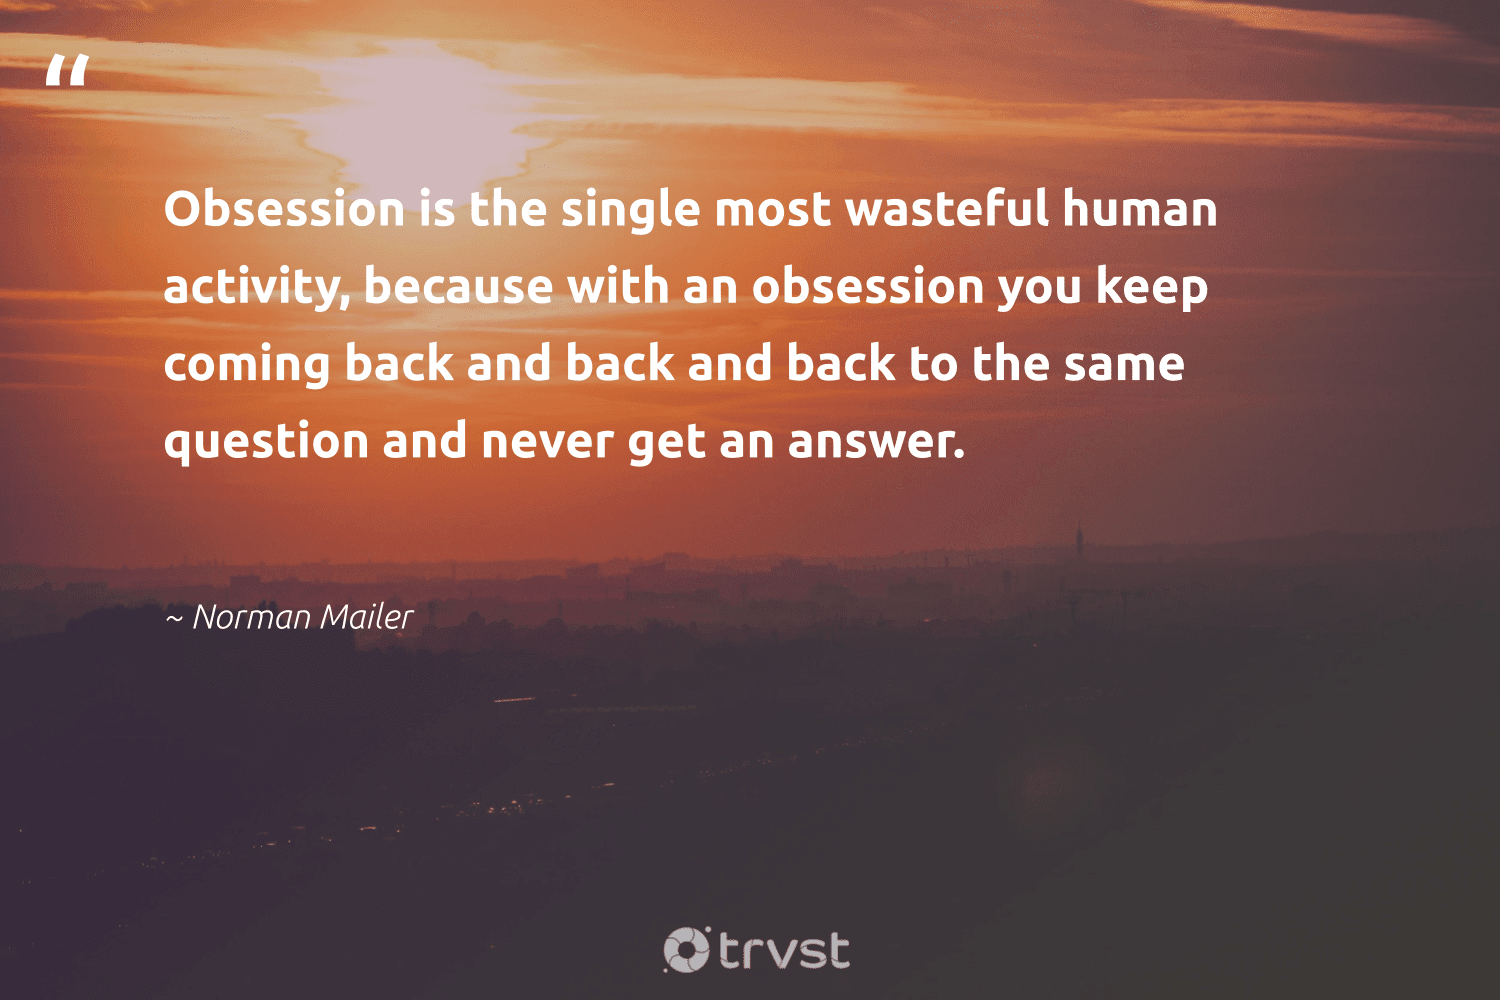 """""""Obsession is the single most wasteful human activity, because with an obsession you keep coming back and back and back to the same question and never get an answer.""""  - Norman Mailer #trvst #quotes #nevergiveup #impact #togetherwecan #dogood #mindset #planetearthfirst #changemakers #socialimpact #begreat #gogreen"""